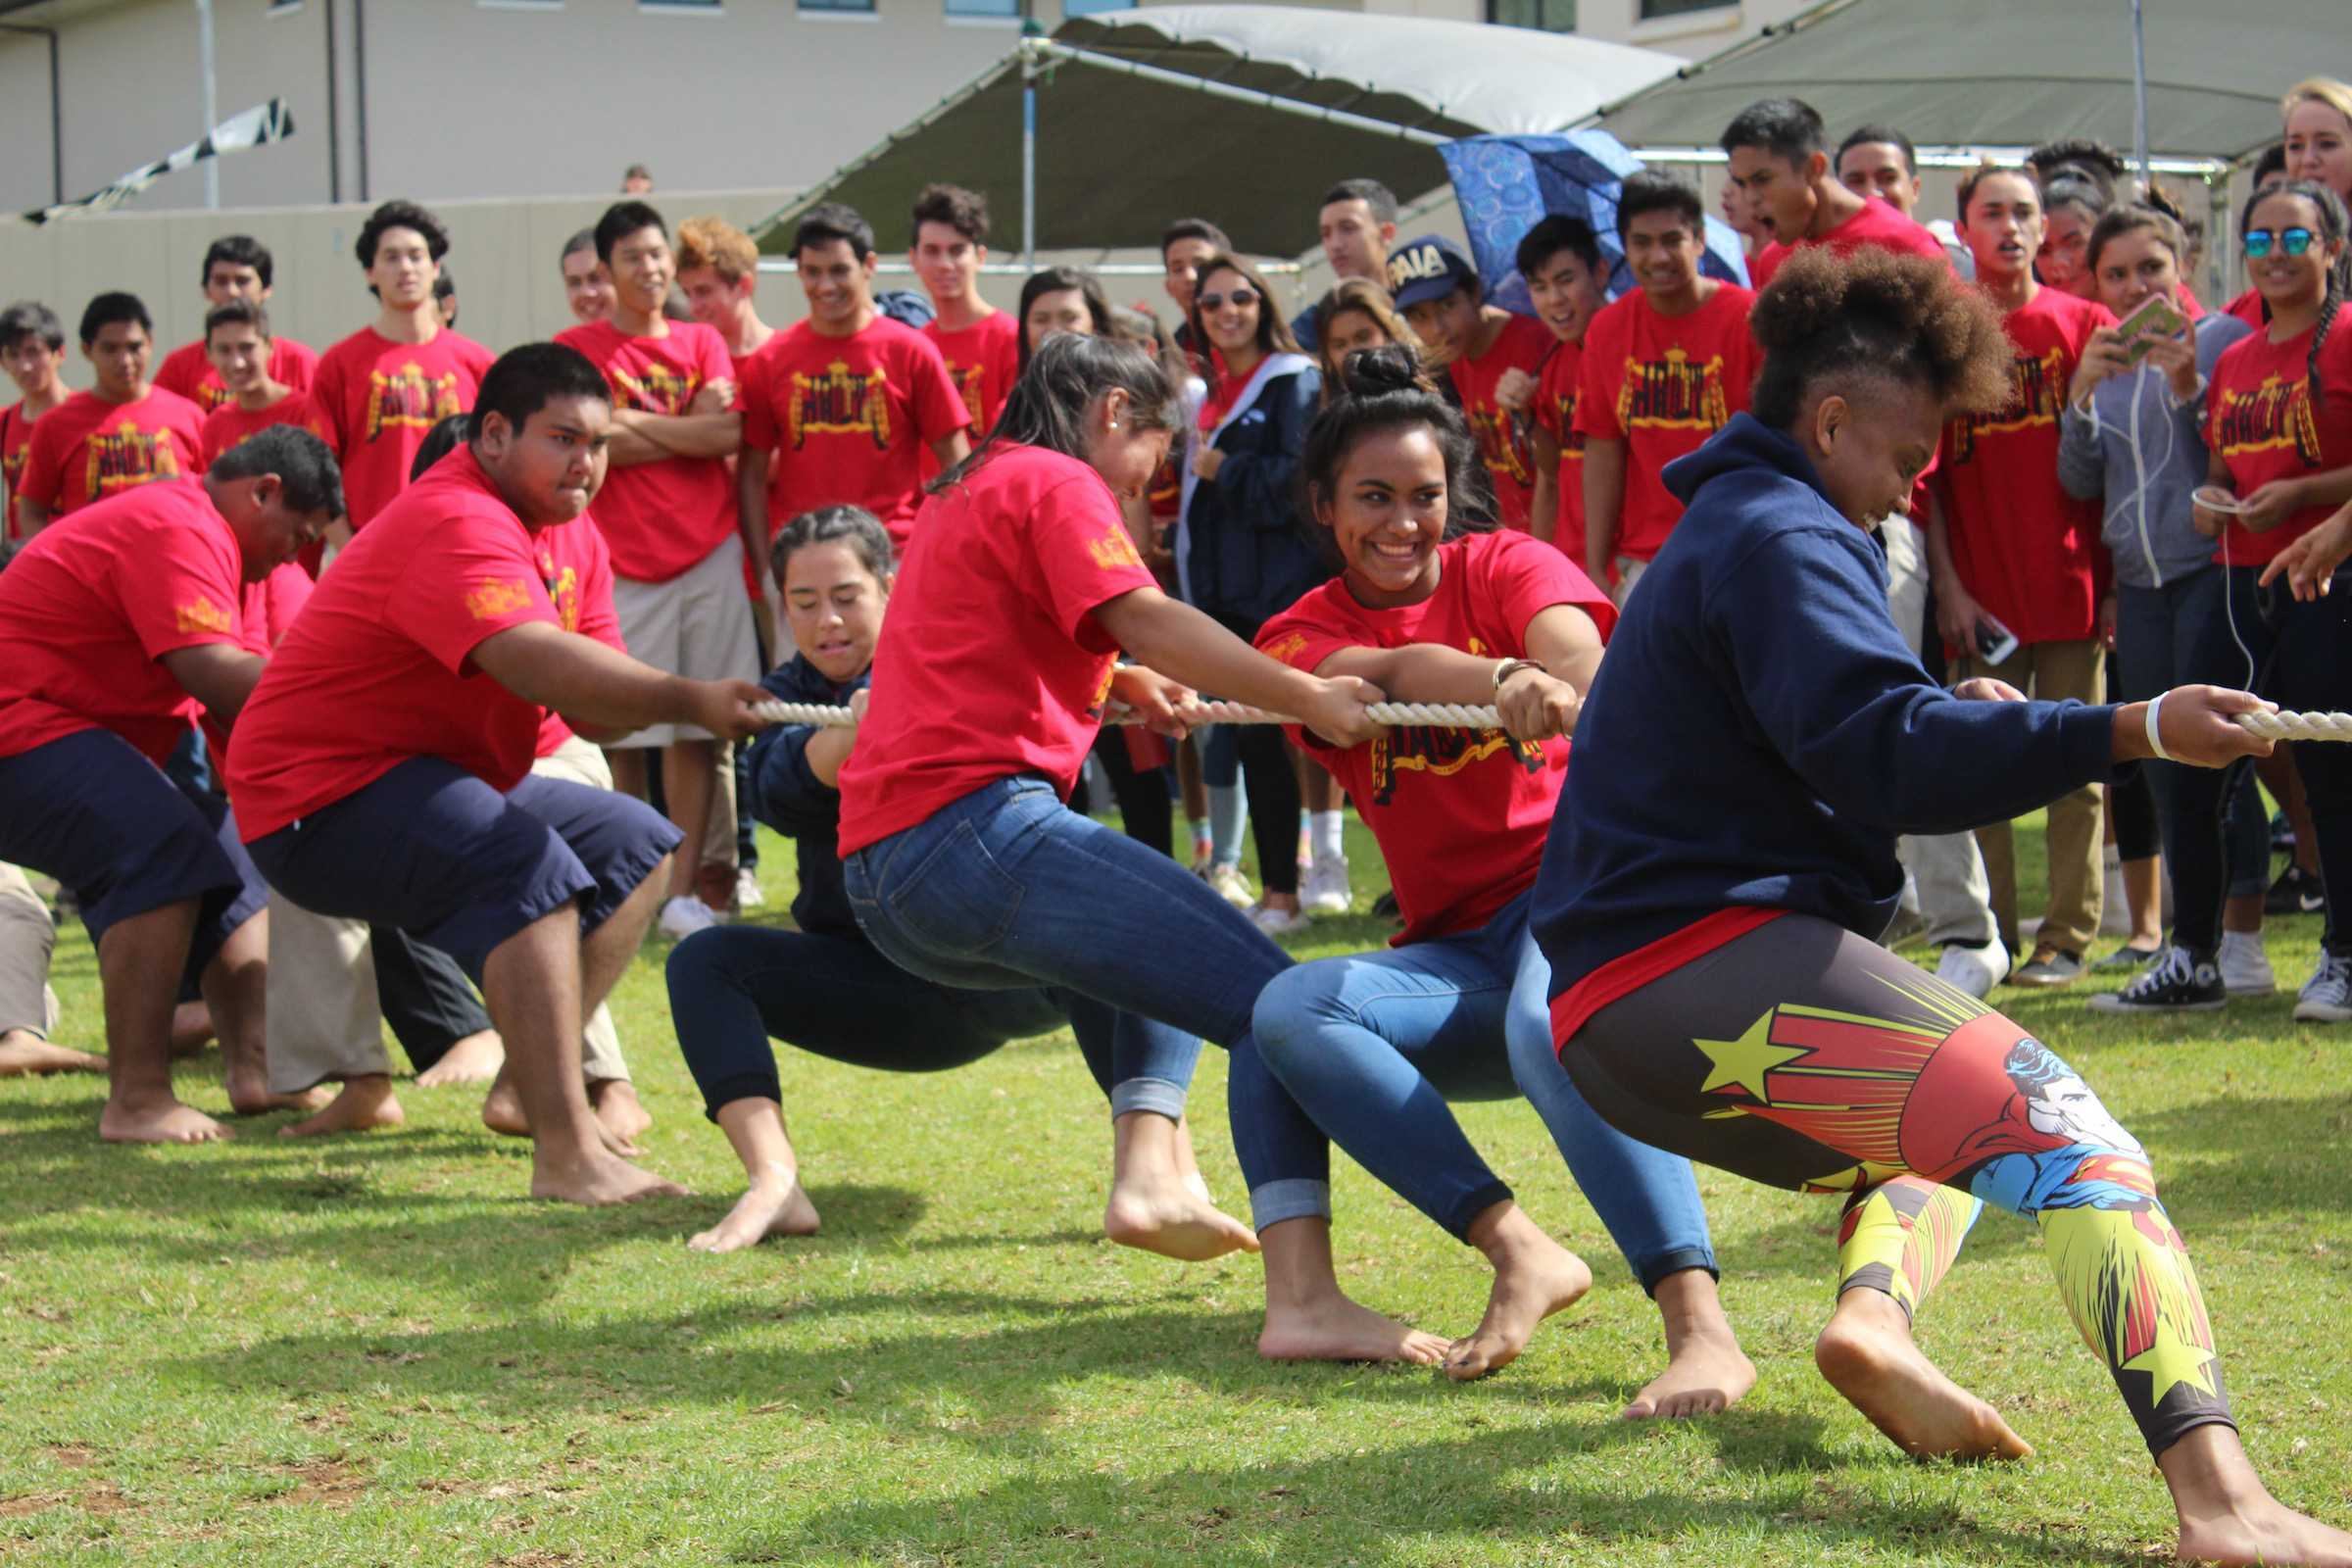 Students dig in during hukihuki. Kamehameha Schools Maui 9th-, 11th- and 12th-grade Warriors gathered at the practice field to compete in Makahiki games throughout Pōʻalima ʻUlaʻula, Oct. 28. Seabury Hall, Molokaʻi High School, and selected KS Scholars also competed in the activities.